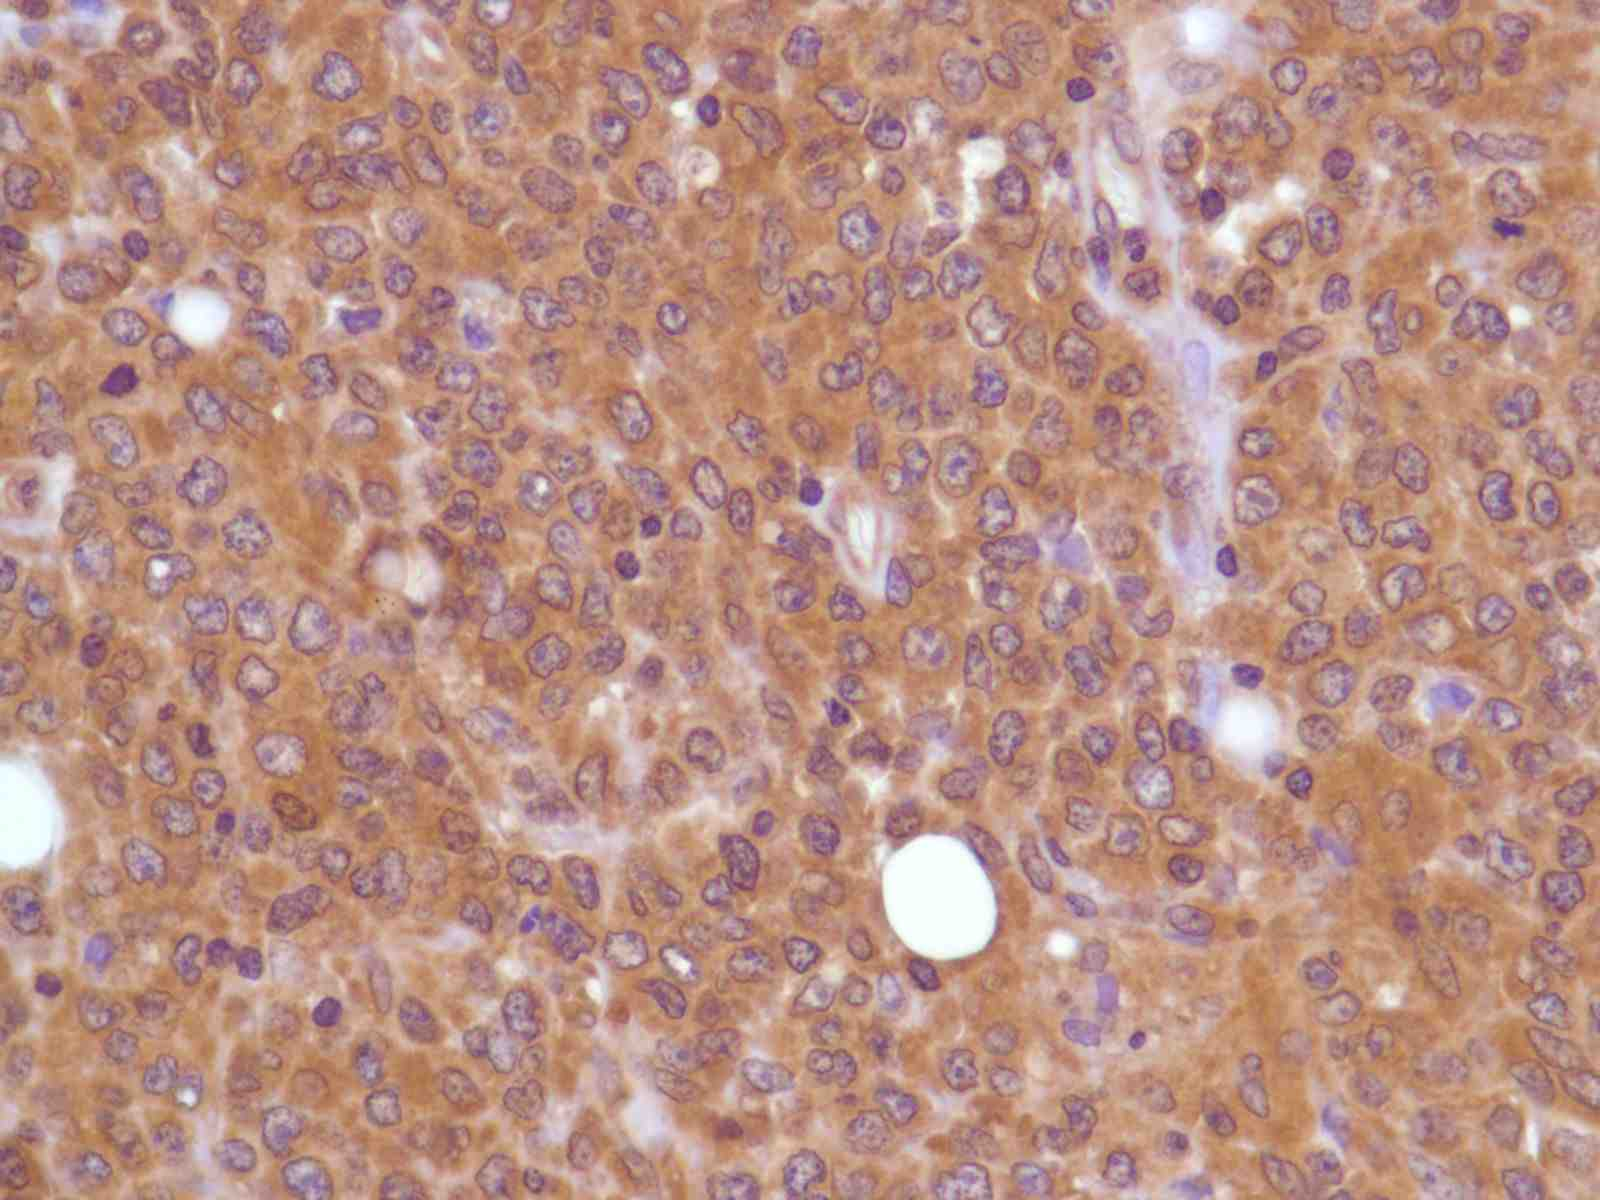 Human Lung Adenocarcinoma stained with anti-PI3K p85 antibody